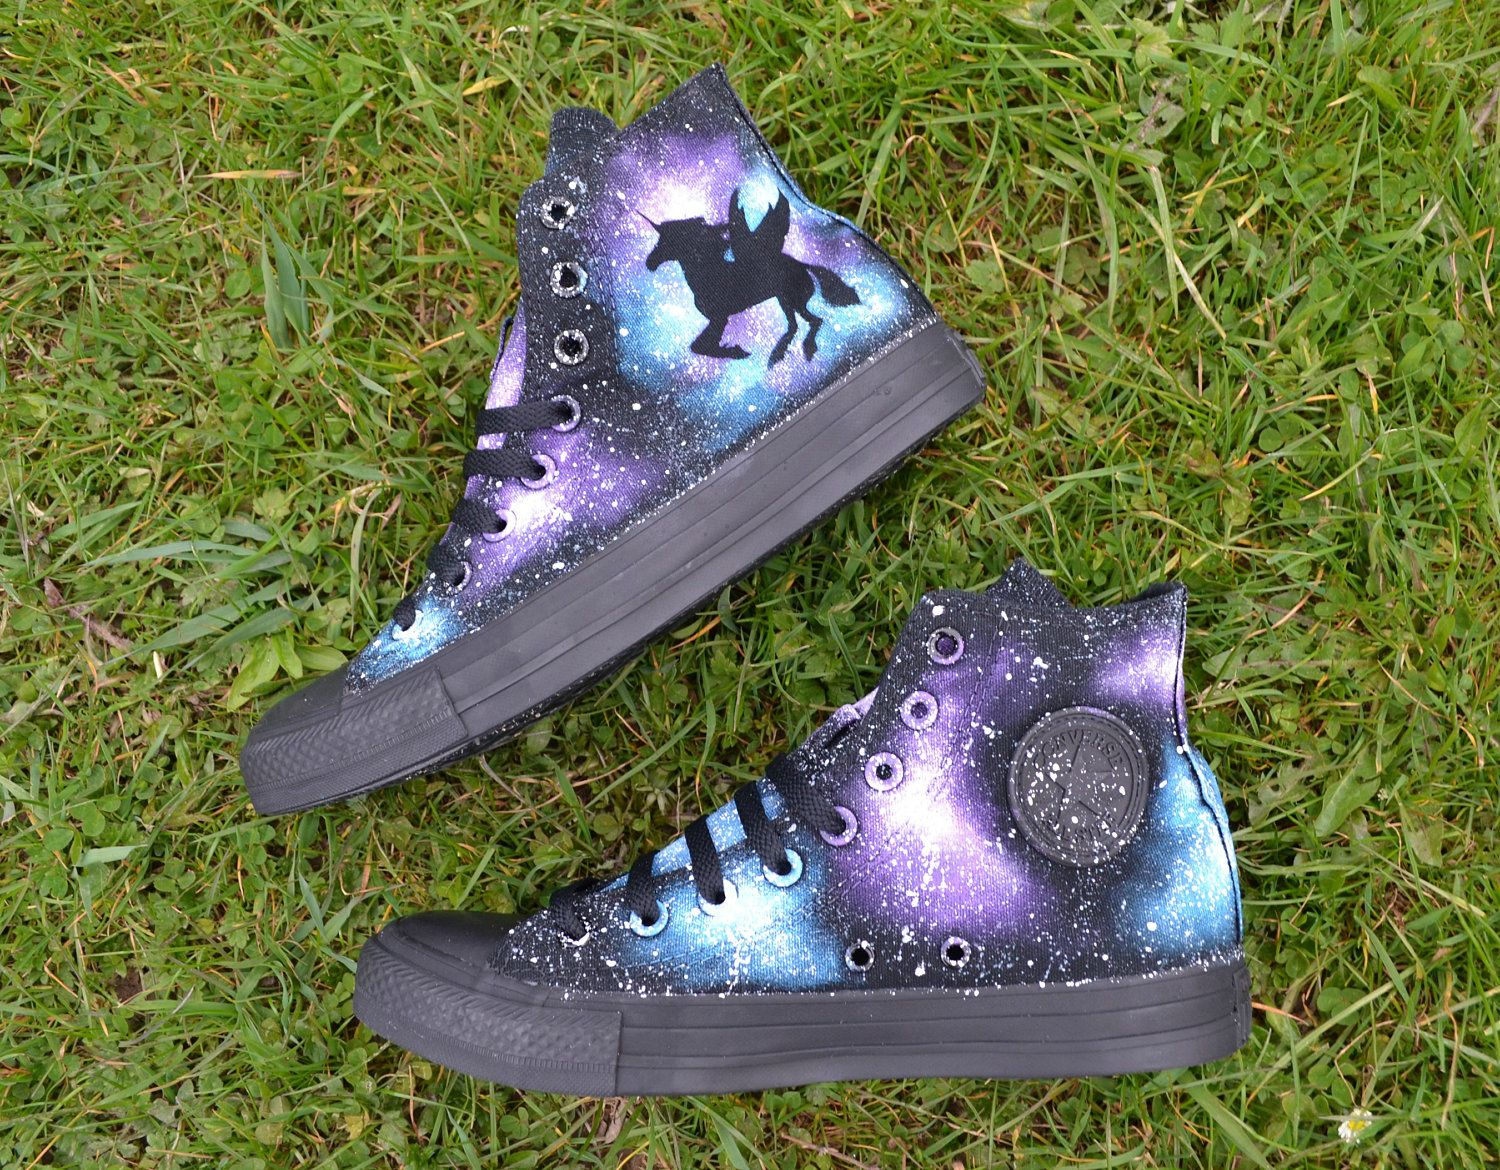 Galaxy Converse with a quirky unicorn silhouette. I always use genuine Converse and hours of love and attention go into each pair, meaning you can be certain to receive something really special. Im open to any customisations, just ask! :)  The unicorn is one ONE side - the outside of the shoe. The inside, which has the Converse badge, is painted in a galaxy design, as shown in the photos.  Check out my shop for all my other shoe designs!   *SIZING* Listed in both UK and EUR sizes. See the…